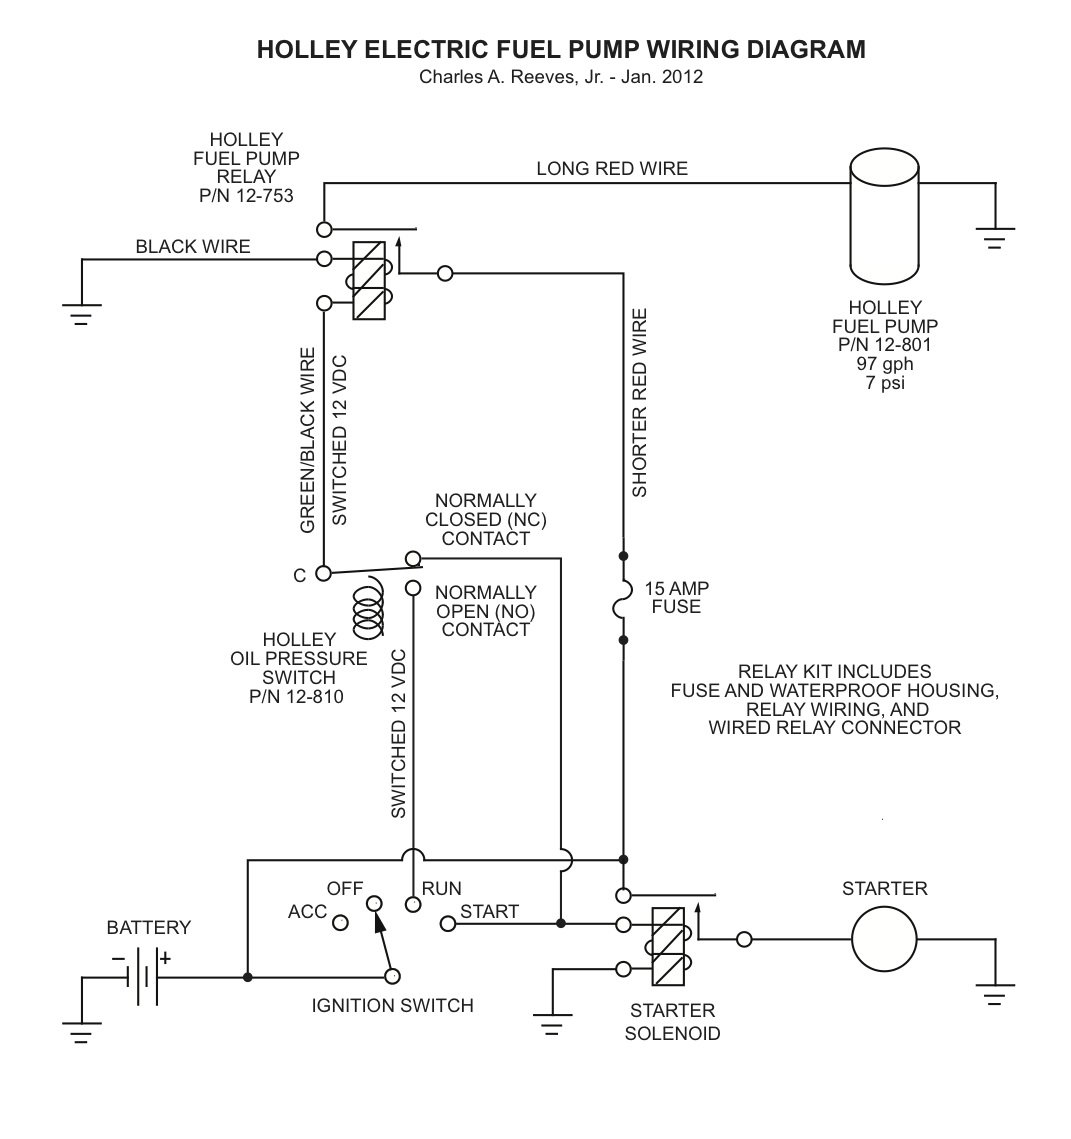 Installing a Holley    Electric       Fuel       Pump    in a 1966 Mustang  Ford Mustang Forum